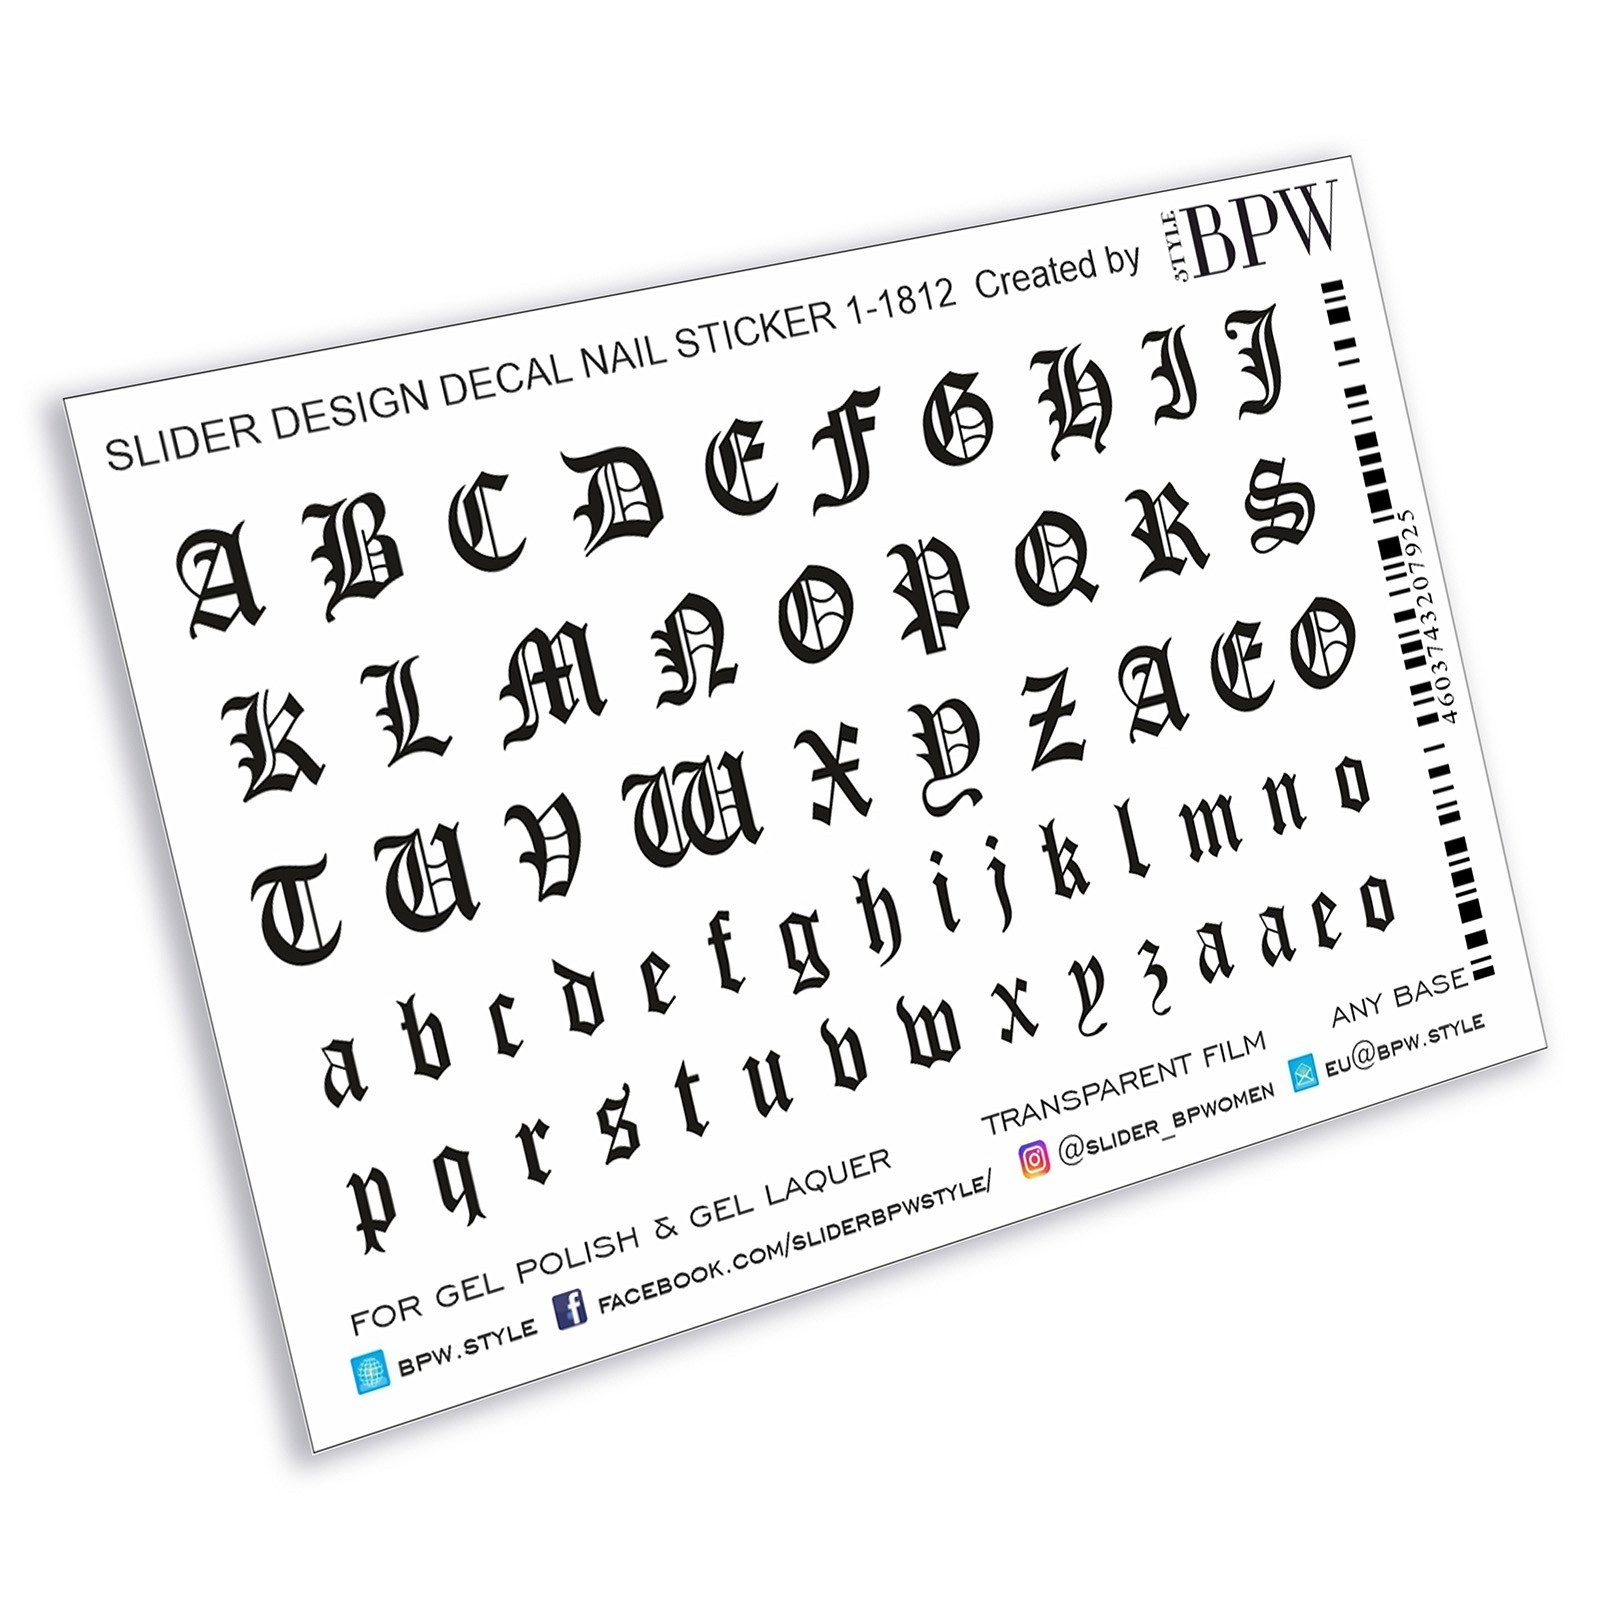 Slider Design Gothic Font, BPW. Style, Water Stickers On Nails, Sd1-1812